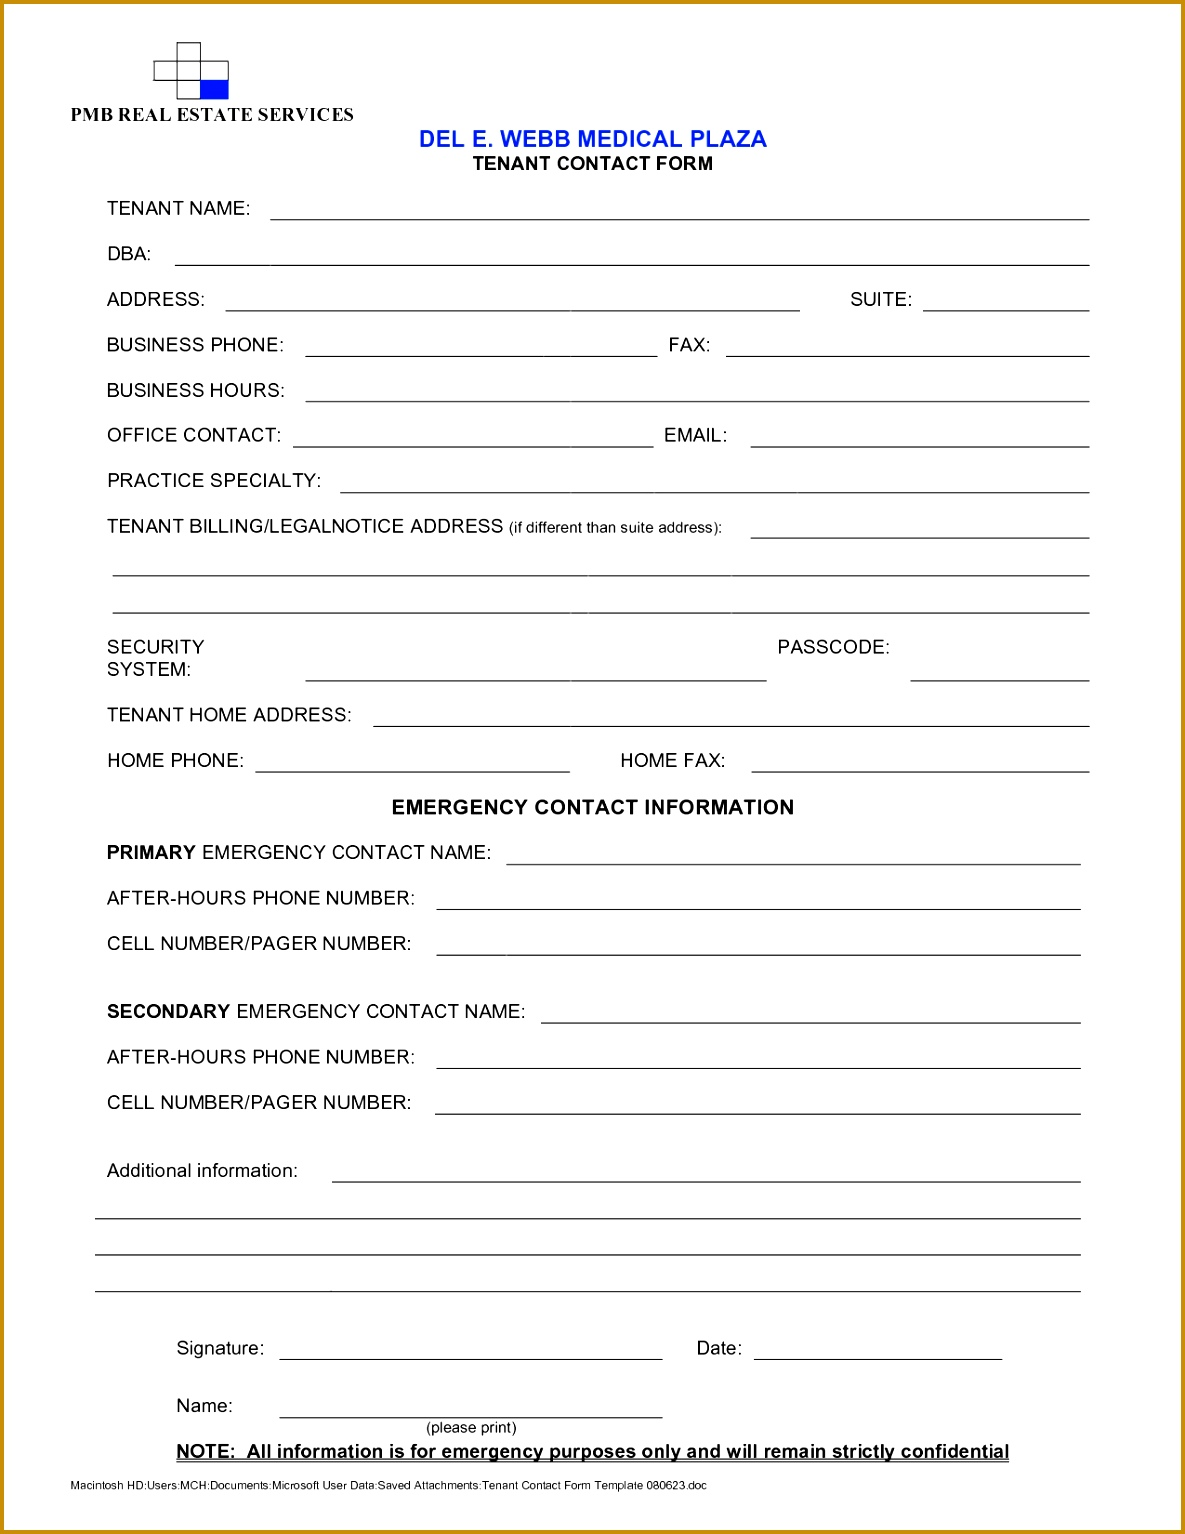 Tenant Information Sheet Template Release Tenant Information Sheet Template Release 11851534